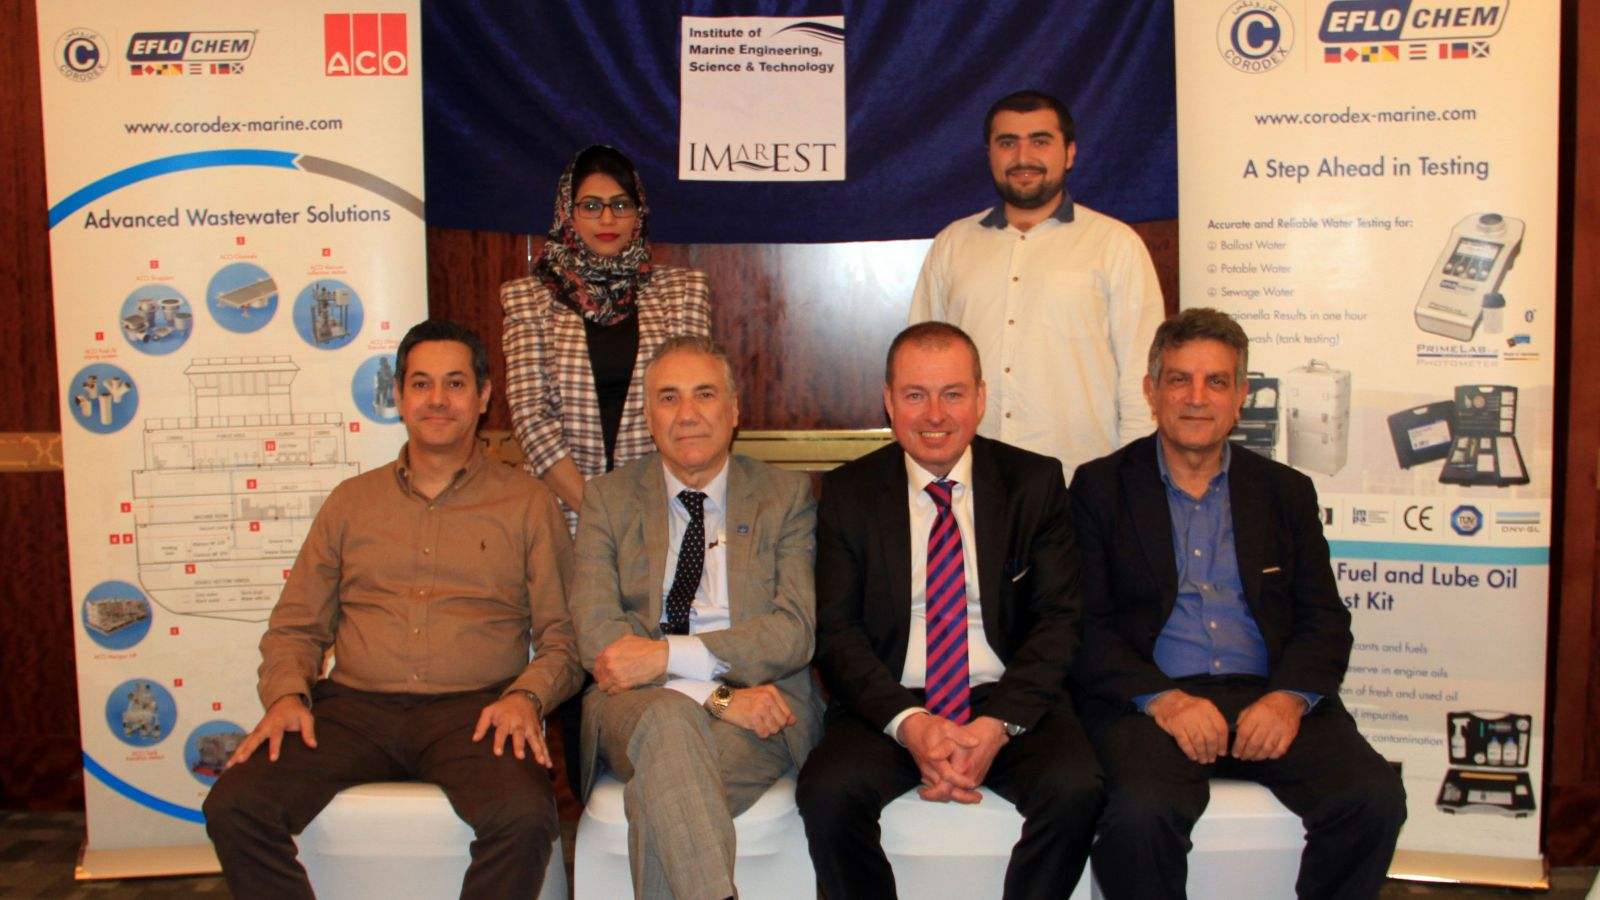 IMarEST group